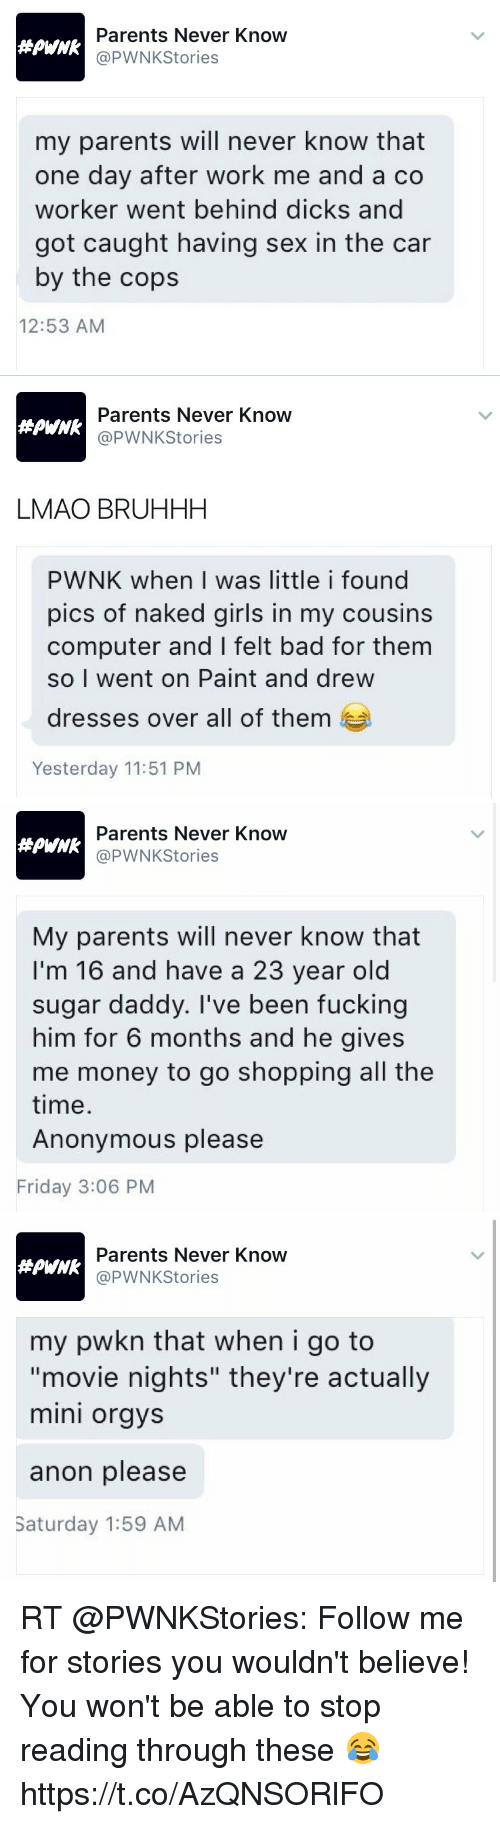 """Bad, Dicks, and Friday: Parents Never Know  @PWNKStories  my parents will never know that  one day after work me and a co  worker went behind dicks and  got caught having sex in the car  by the cops  12:53 AM   Parents Never Know  @PWNKStories  #PHNk  LMAO BRUHHH  PWNK when I was little i found  pics of naked girls in my cousins  computer and I felt bad for them  so I went on Paint and drew  dresses over all of them  Yesterday 11:51 PM   Parents Never Know  @PWNKStories  My parents will never know that  I'm 16 and have a 23 year old  sugar daddy. I've been fucking  him for 6 months and he gives  me money to go shopping all the  time  Anonymous please  Friday 3:06 PM   Parents Never Know  @PWNKStories  my pwkn that when i go to  """"movie nights"""" they're actually  mini orgys  anon please  Saturday 1:59 AM RT @PWNKStories: Follow me for stories you wouldn't believe! You won't be able to stop reading through these 😂 https://t.co/AzQNSORlFO"""